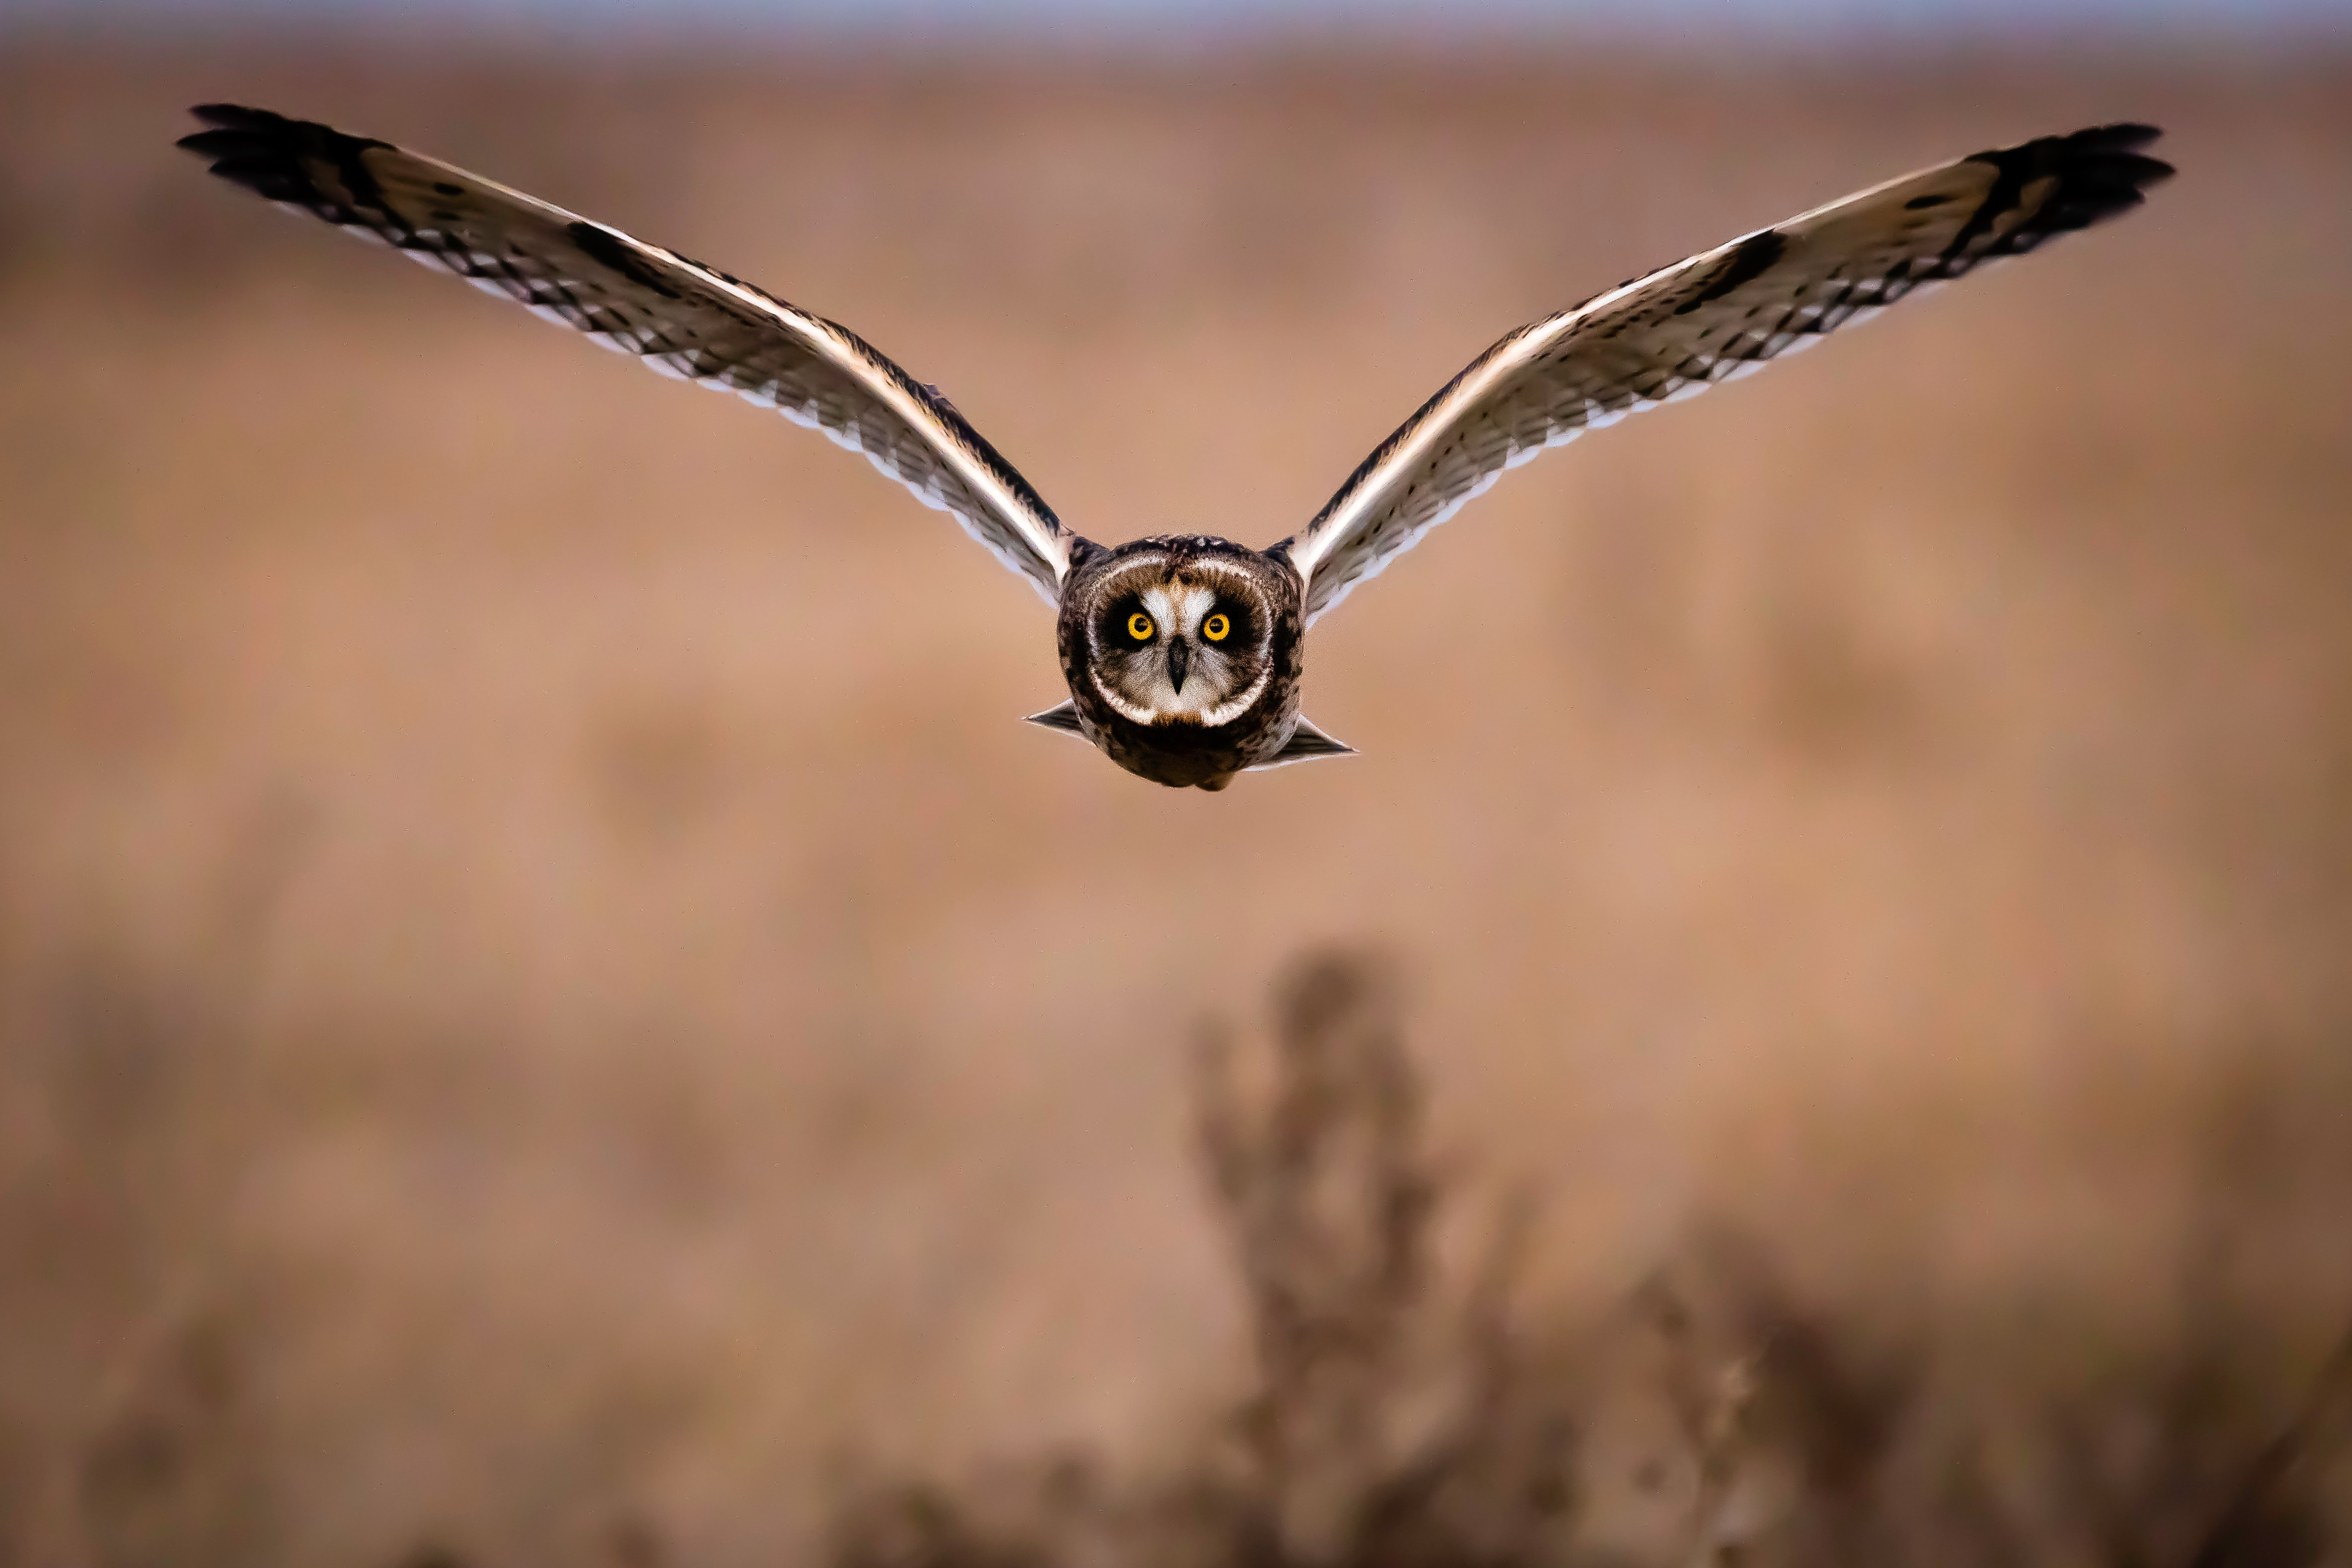 105367 download wallpaper Animals, Owl, Bird, Flight, Wings, Predator screensavers and pictures for free